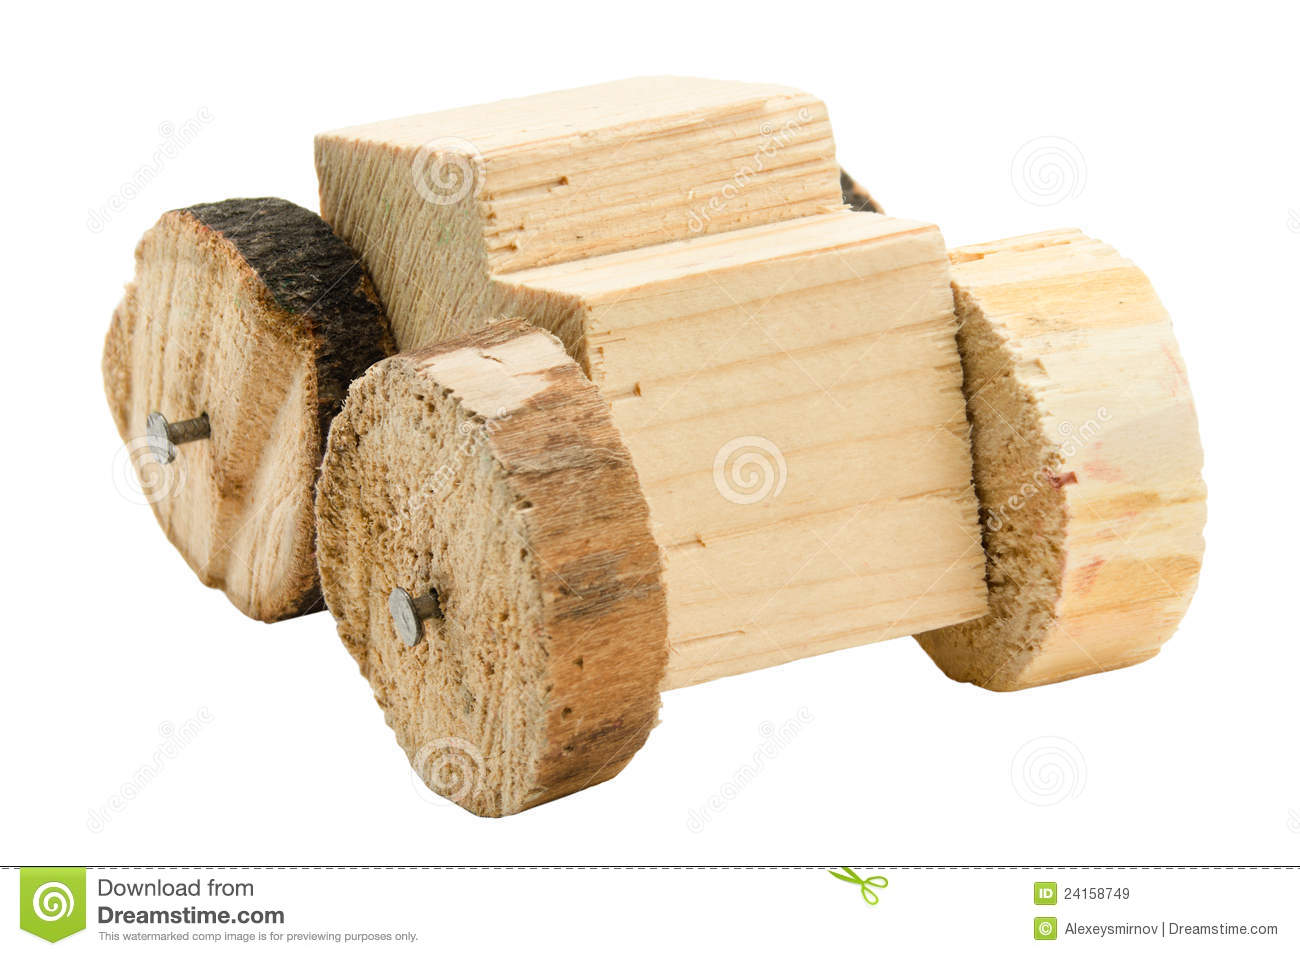 Homemade Wooden Car Toy Royalty Free Stock Images - Image: 24158749